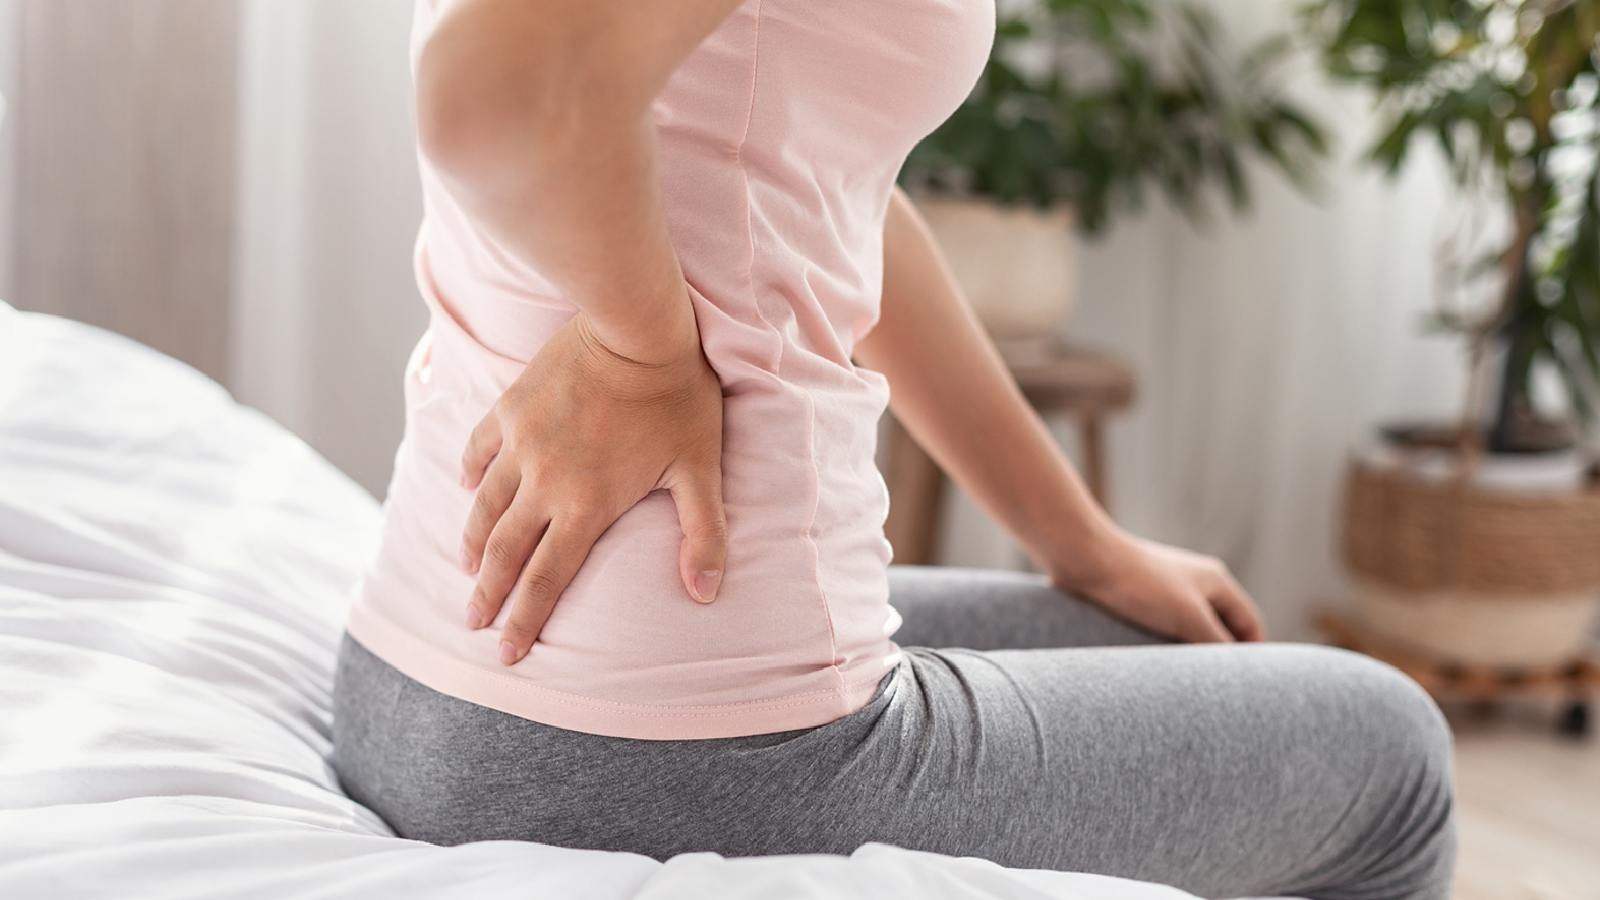 Sacroiliac and Pelvic Girdle Dysfunction – PGM Method Programme : Effectively assess and manage your patients with pelvic girdle pain using the Pelvic Girdle Musculoskeletal (PGM) Method